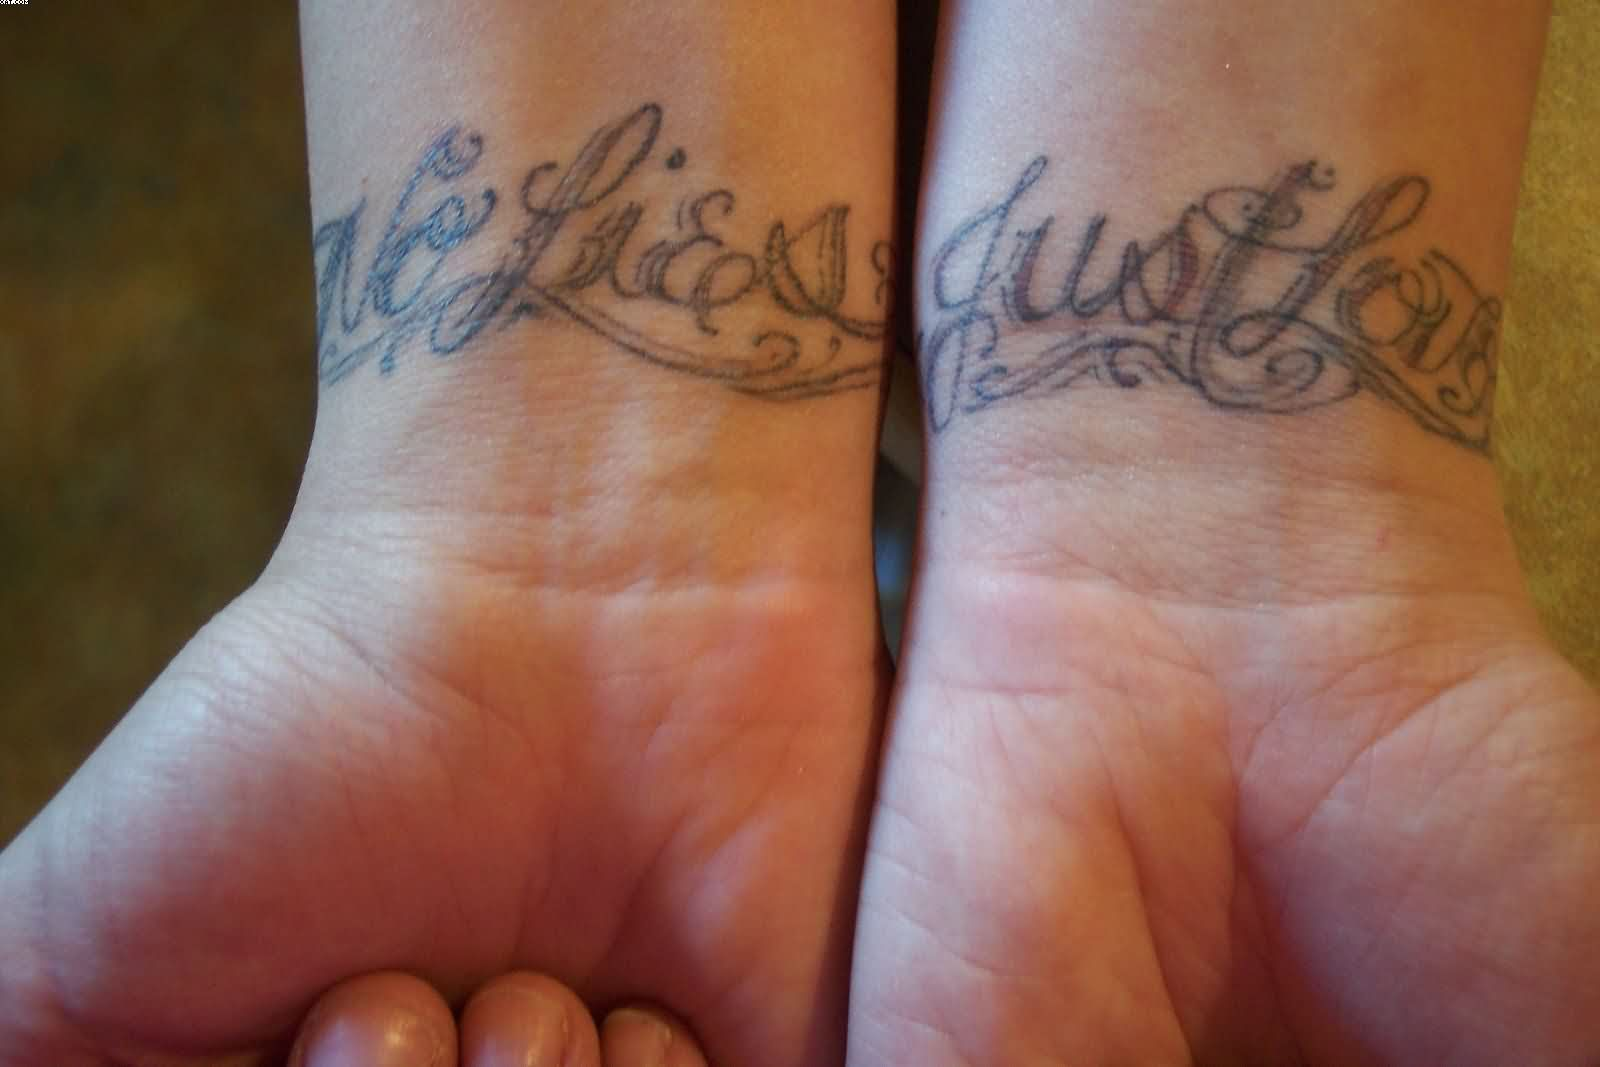 Tattoos Love Quotes 50 Awesome Wrist Tattoo Designs Images Ideas & Photos  Picsmine